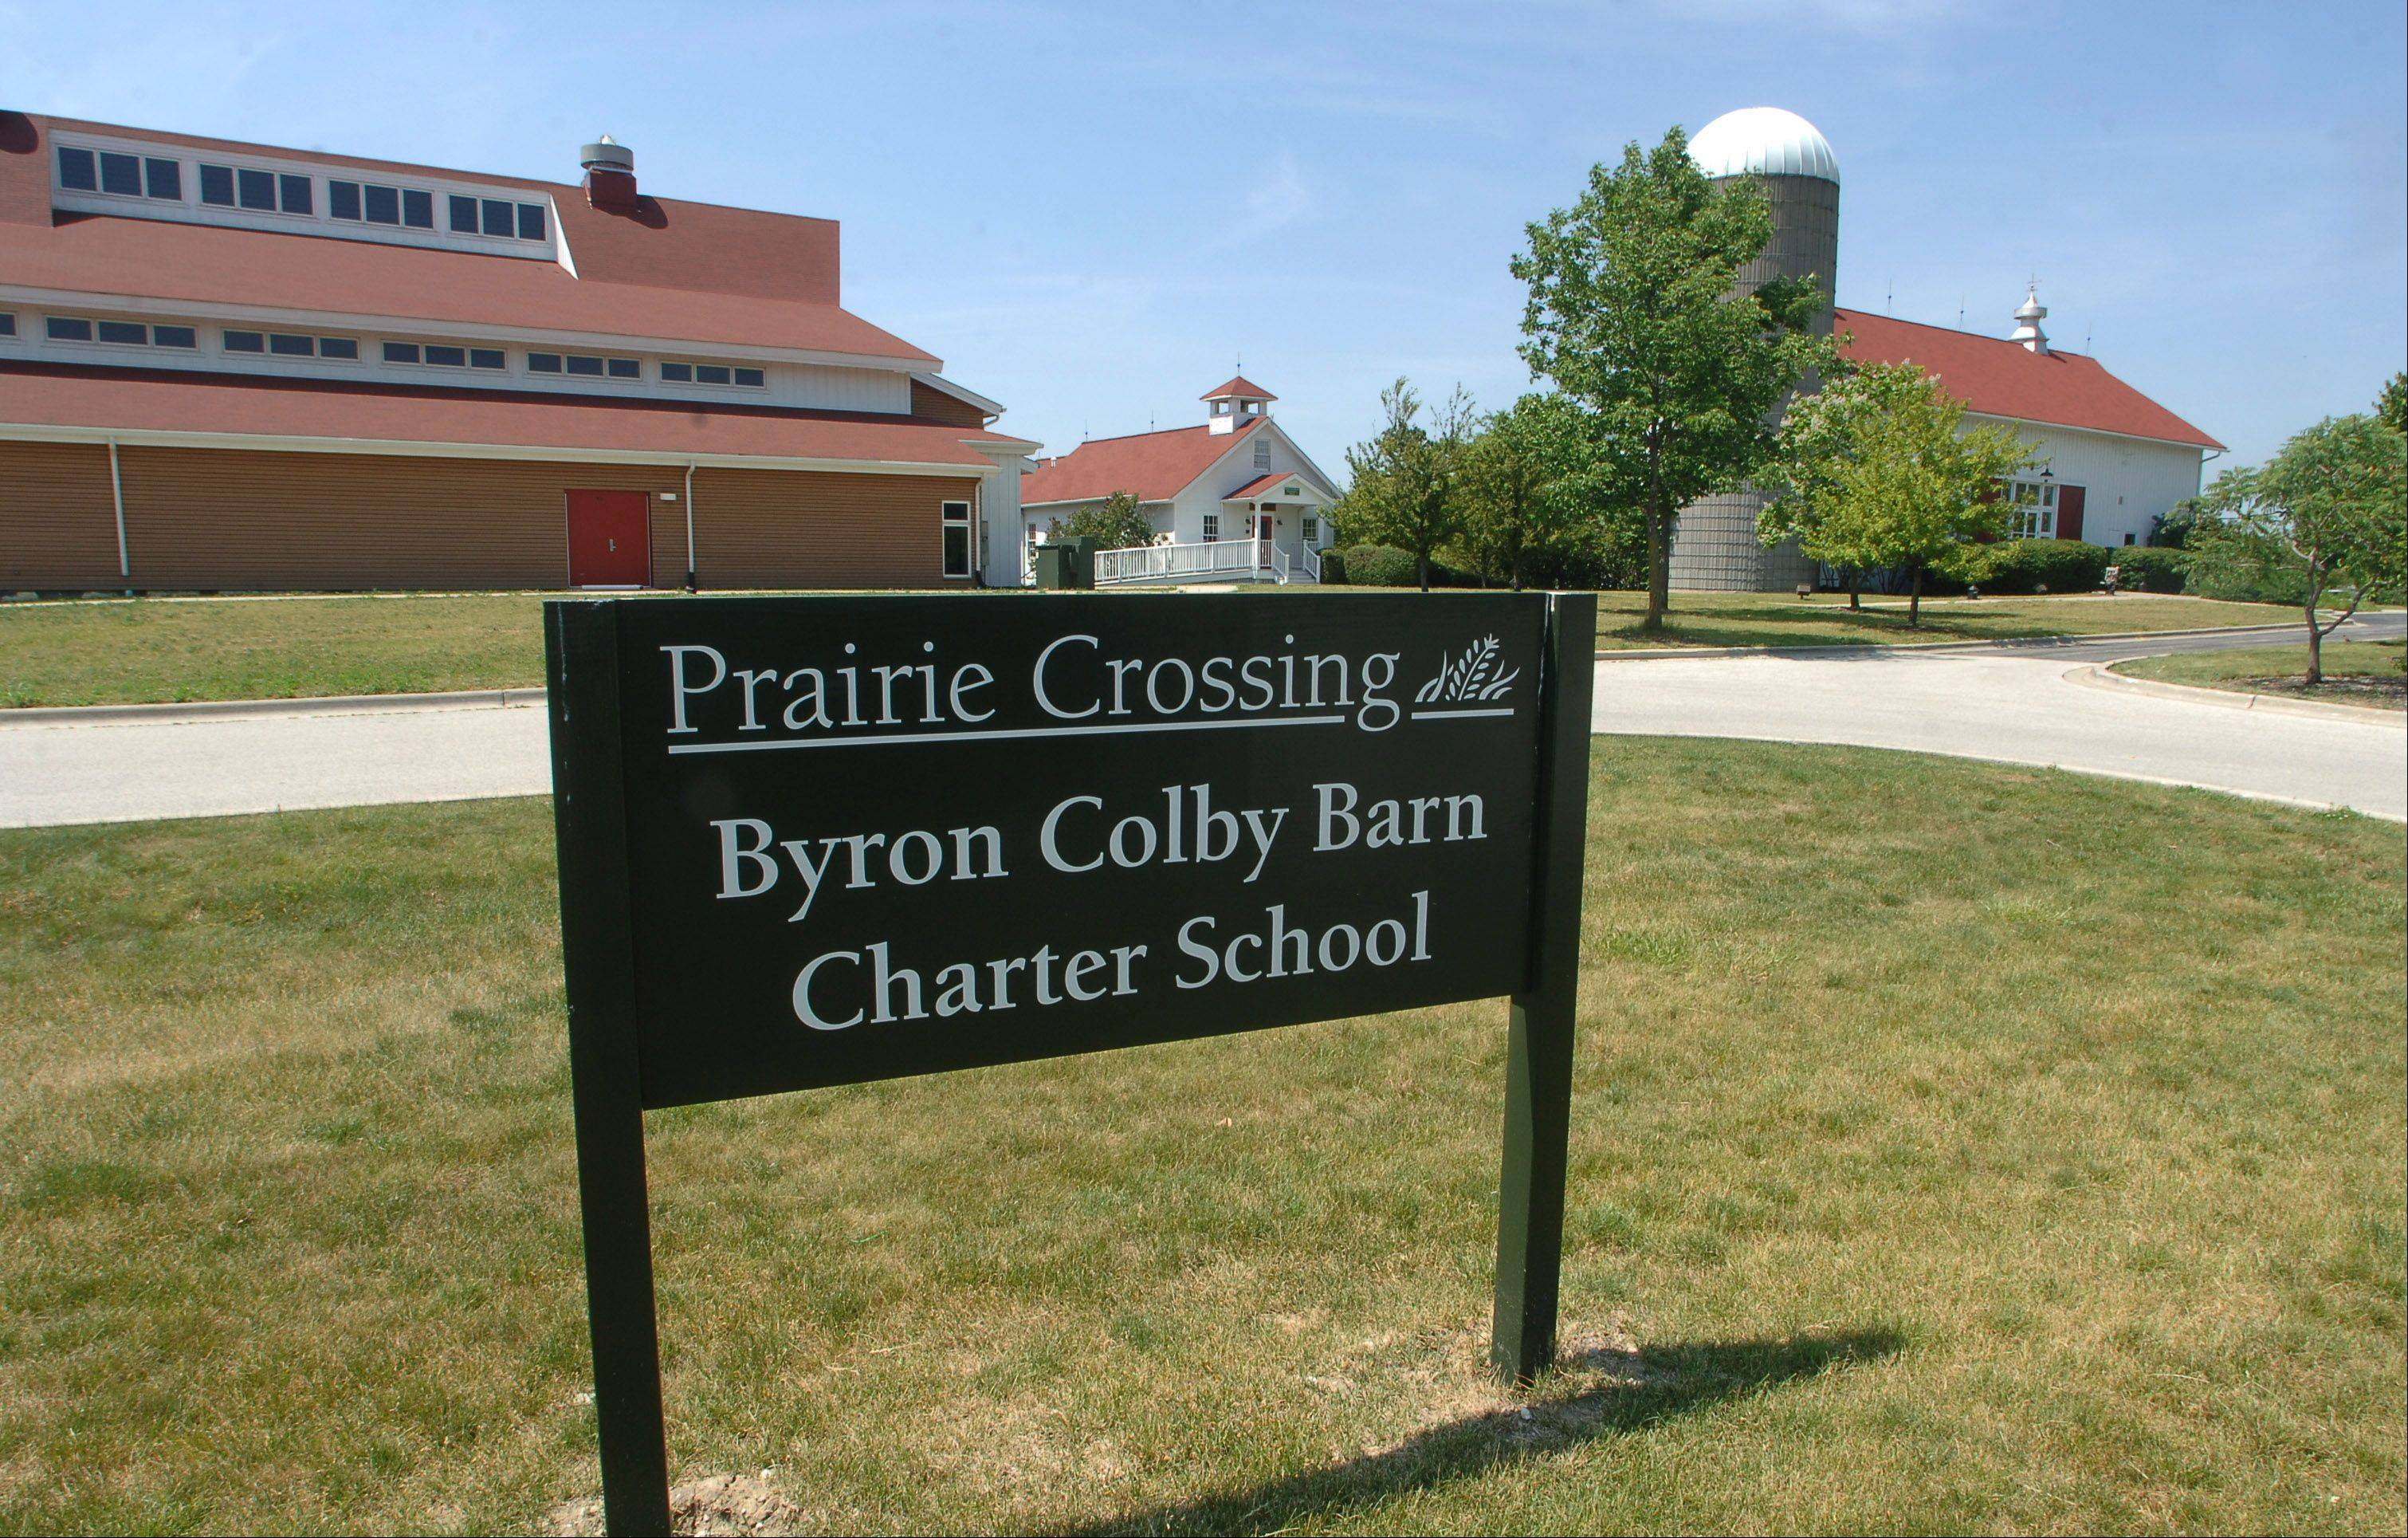 Prairie Crossing Charter School is near Byron Colby Barn in a subdivision by the same name in Grayslake. The school seeks another five-year renewal of its state charter.